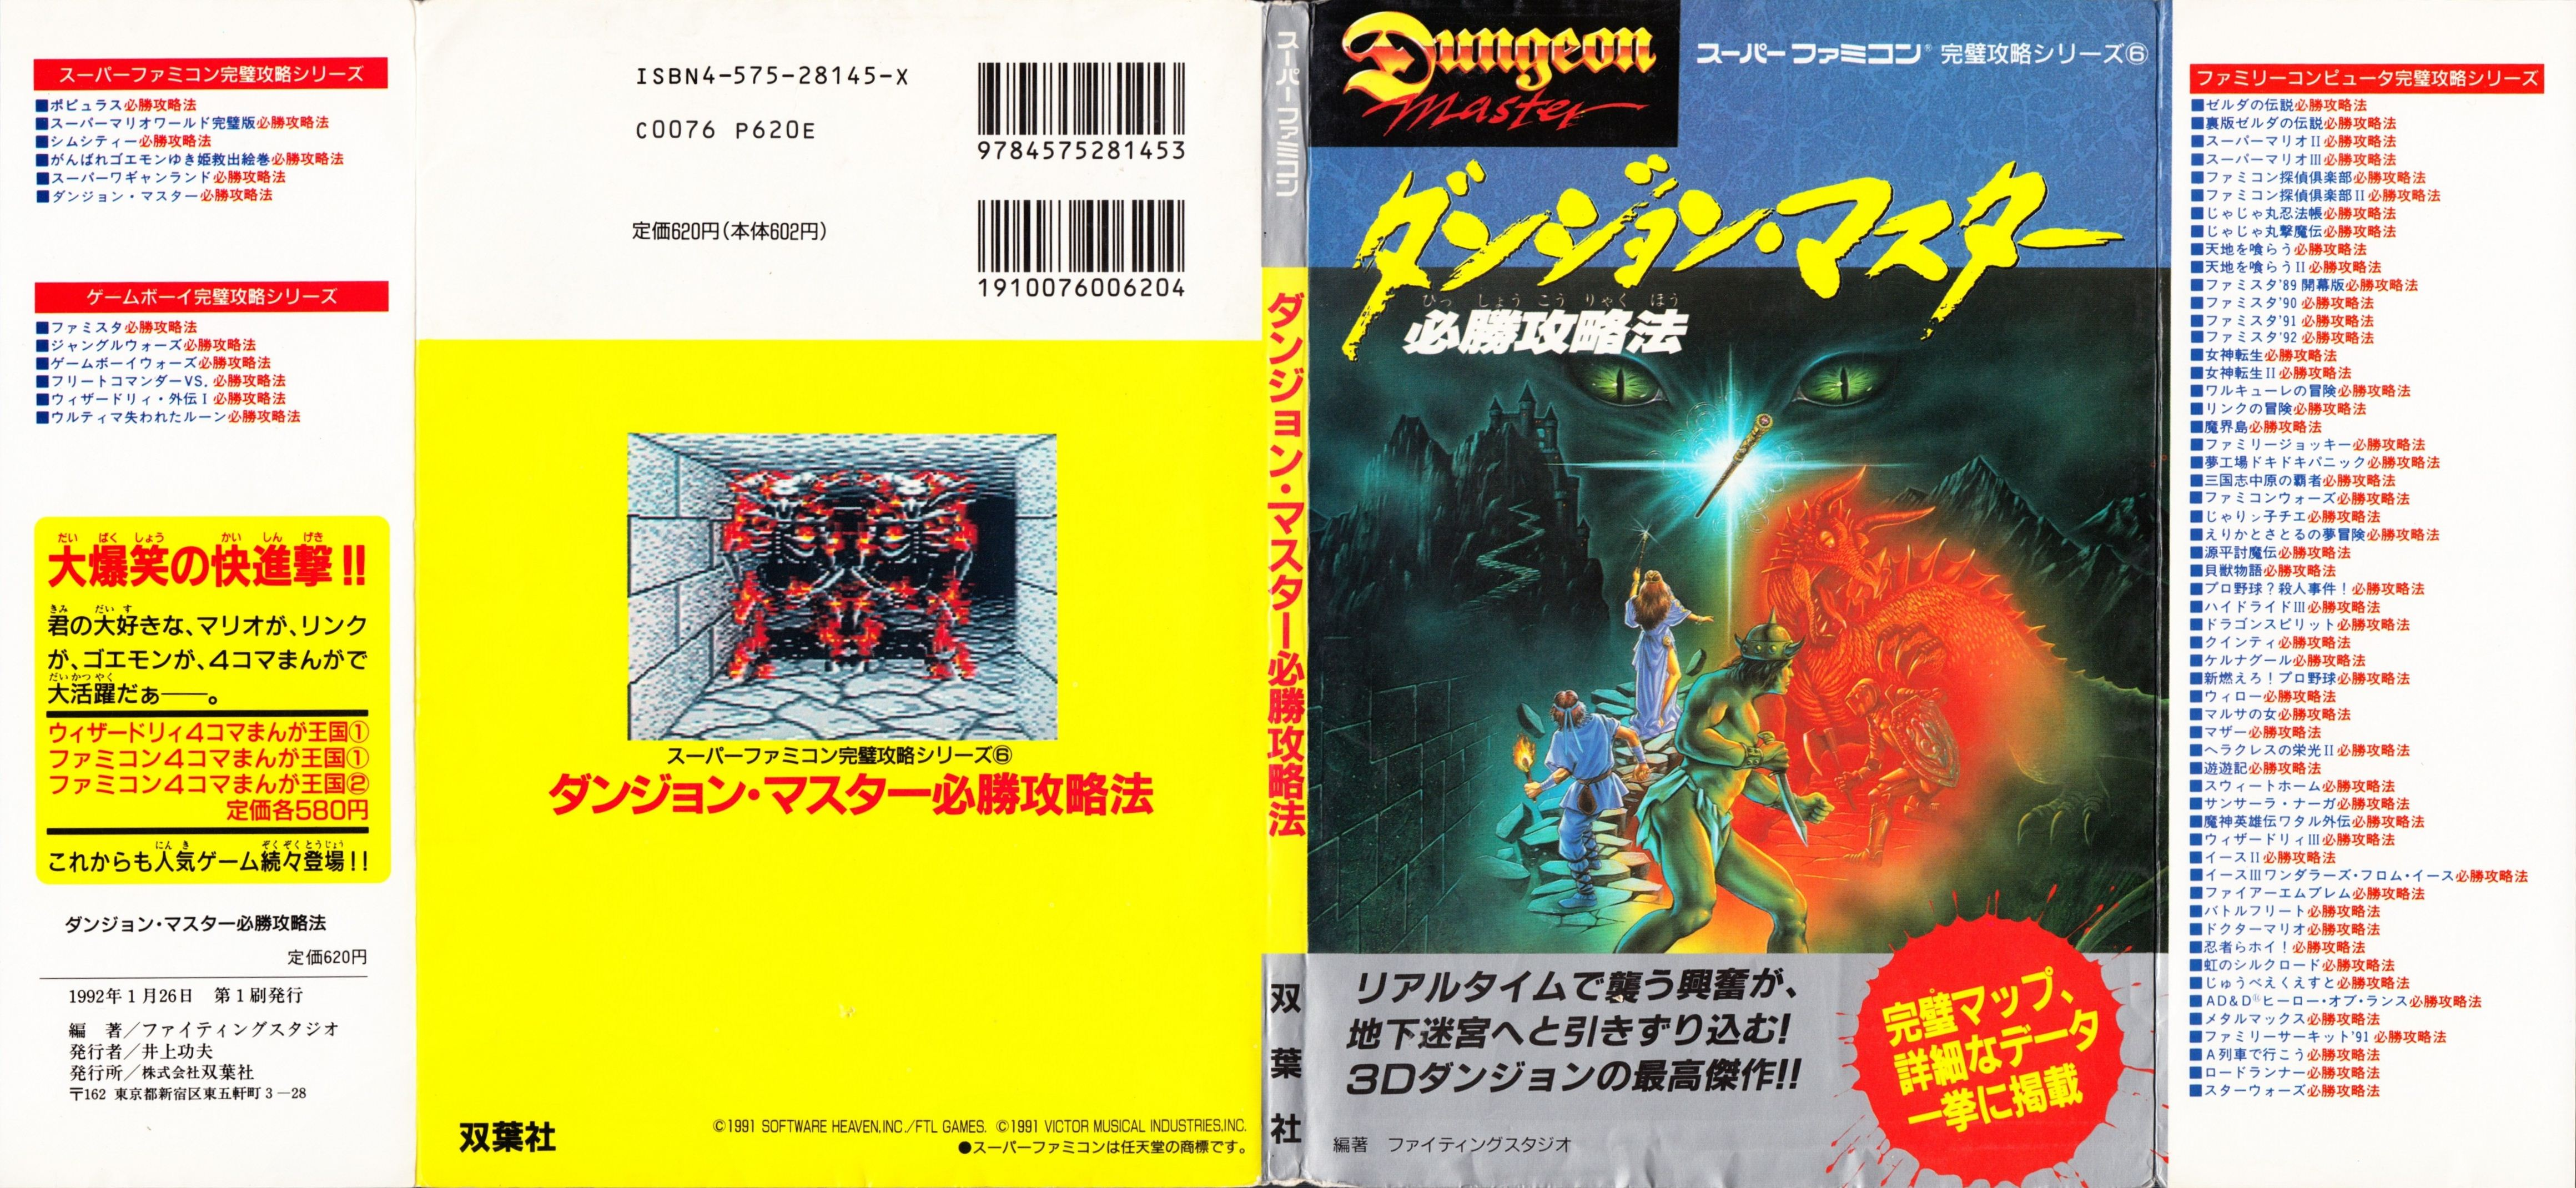 Hint Book - Dungeon Master Strategy Of Victory - JP - Dust Jacket - Front - Scan